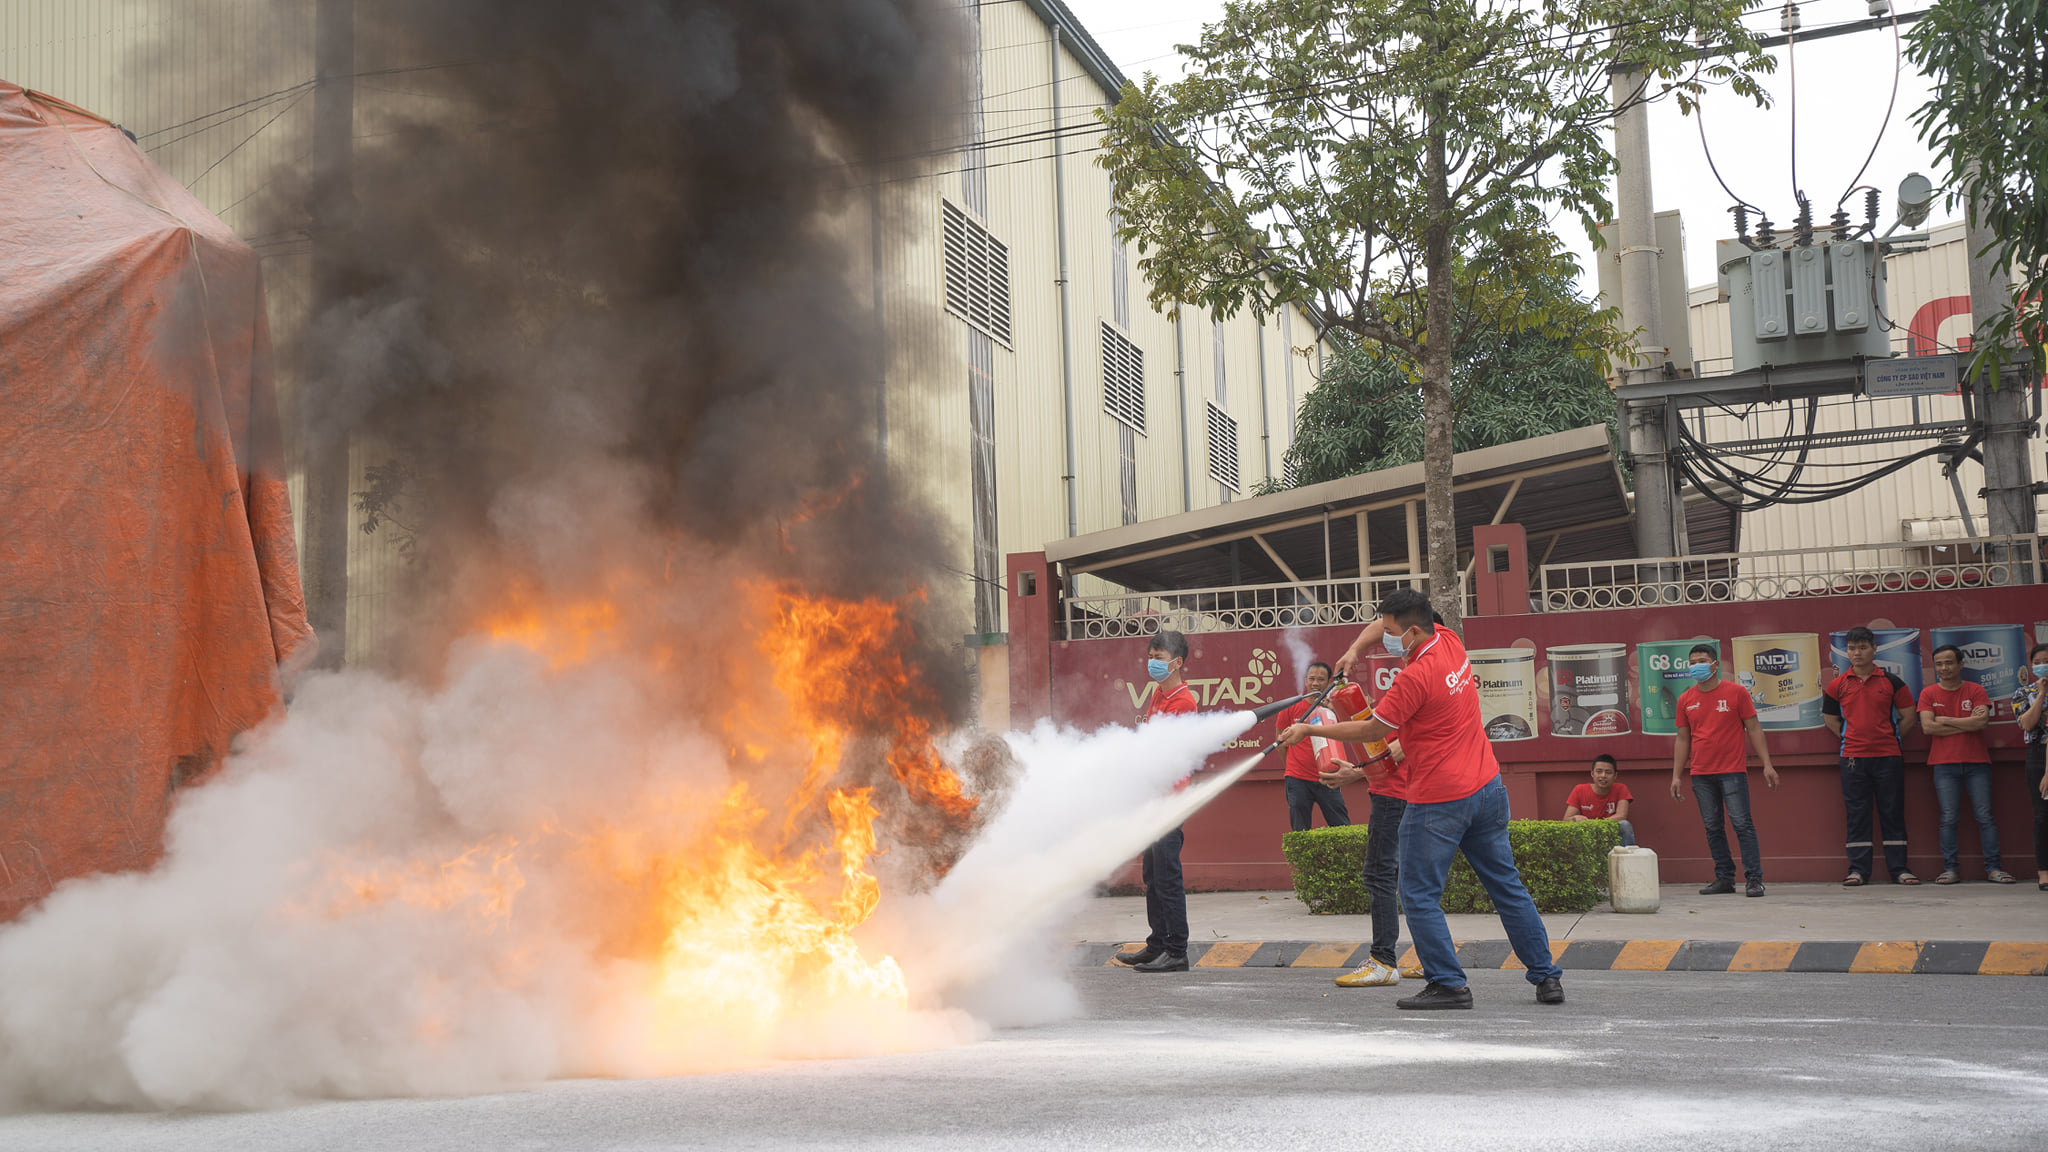 VNSTAR ORGANIZED FIRE PREVENTION AND FIGHTING TRAINING IN 2020